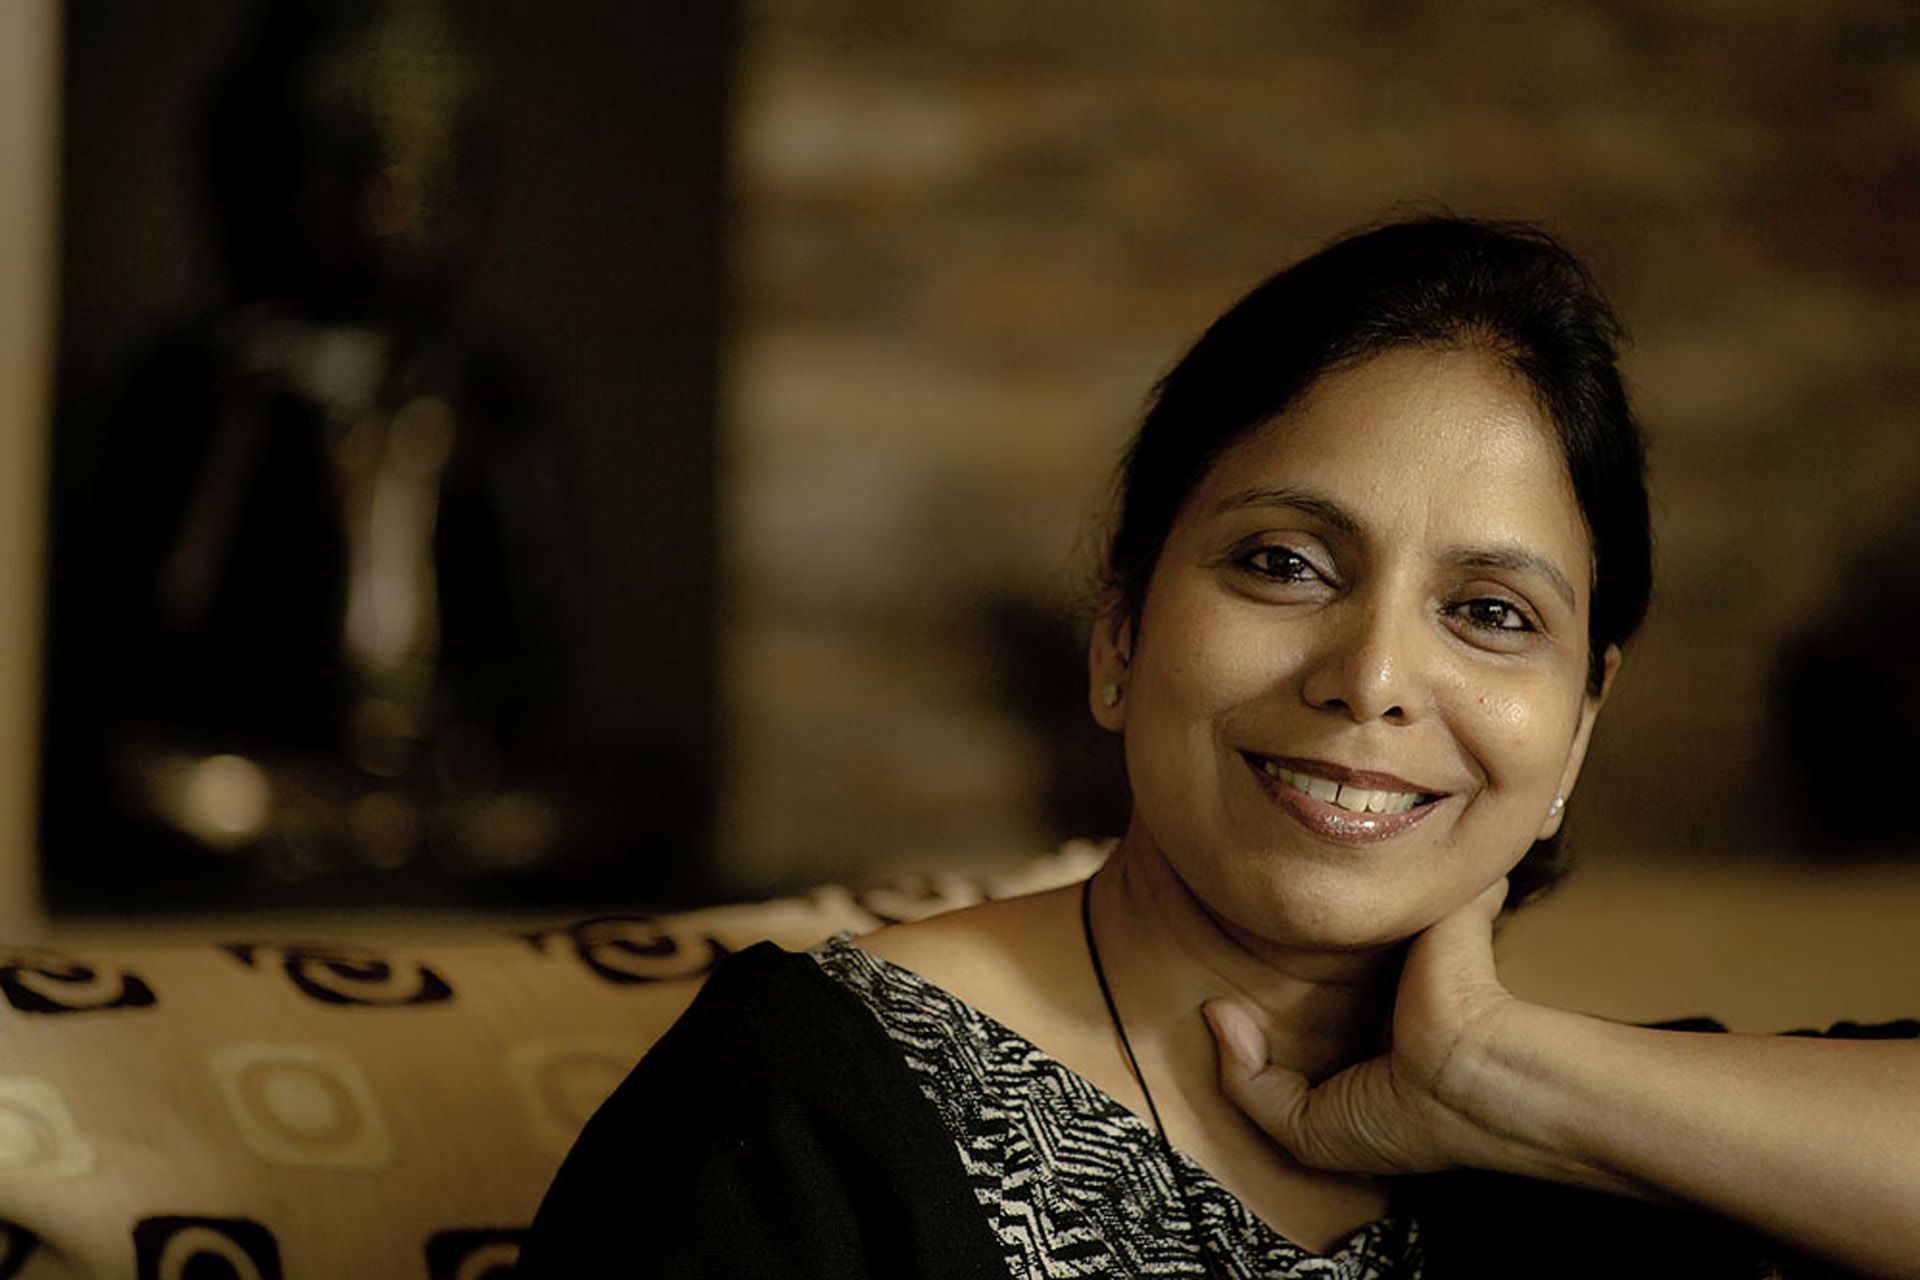 Diet during pregnancy - an interview with Dr Preeti Agraval